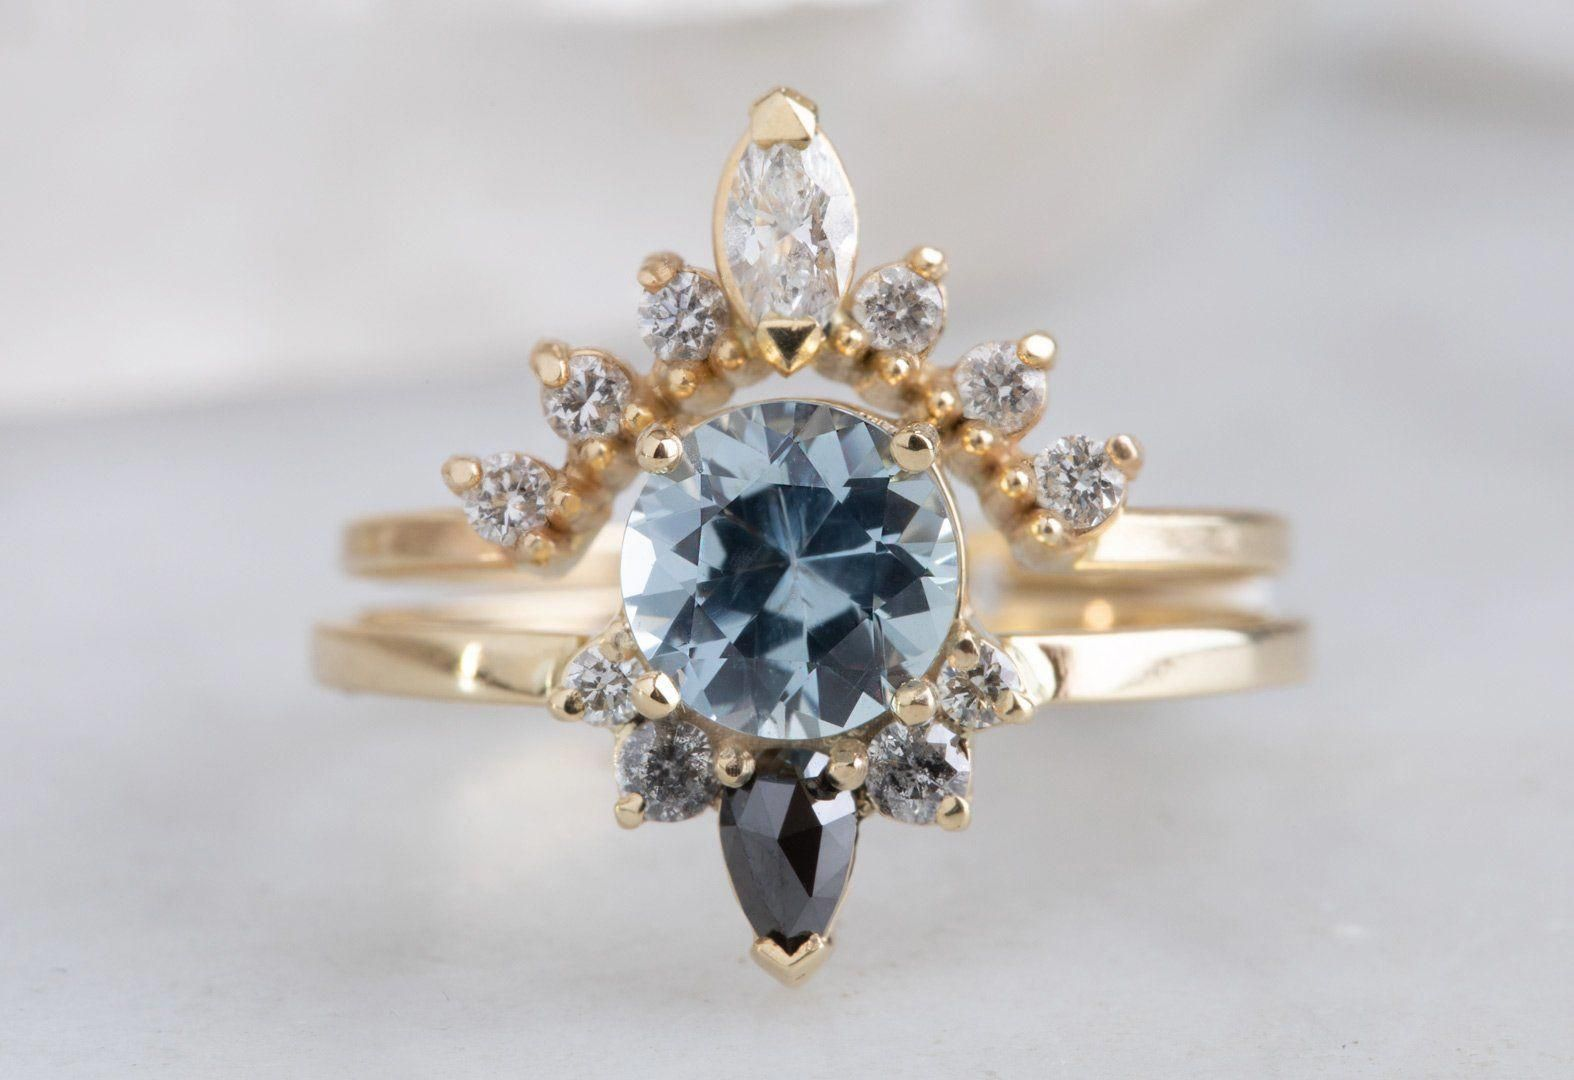 Simple Tips To Sell Your Jewelry Easily And Fast Good Day Wonderful People Th In 2020 Sapphire Engagement Ring Blue Vintage Engagement Rings Gold Diamond Wedding Band